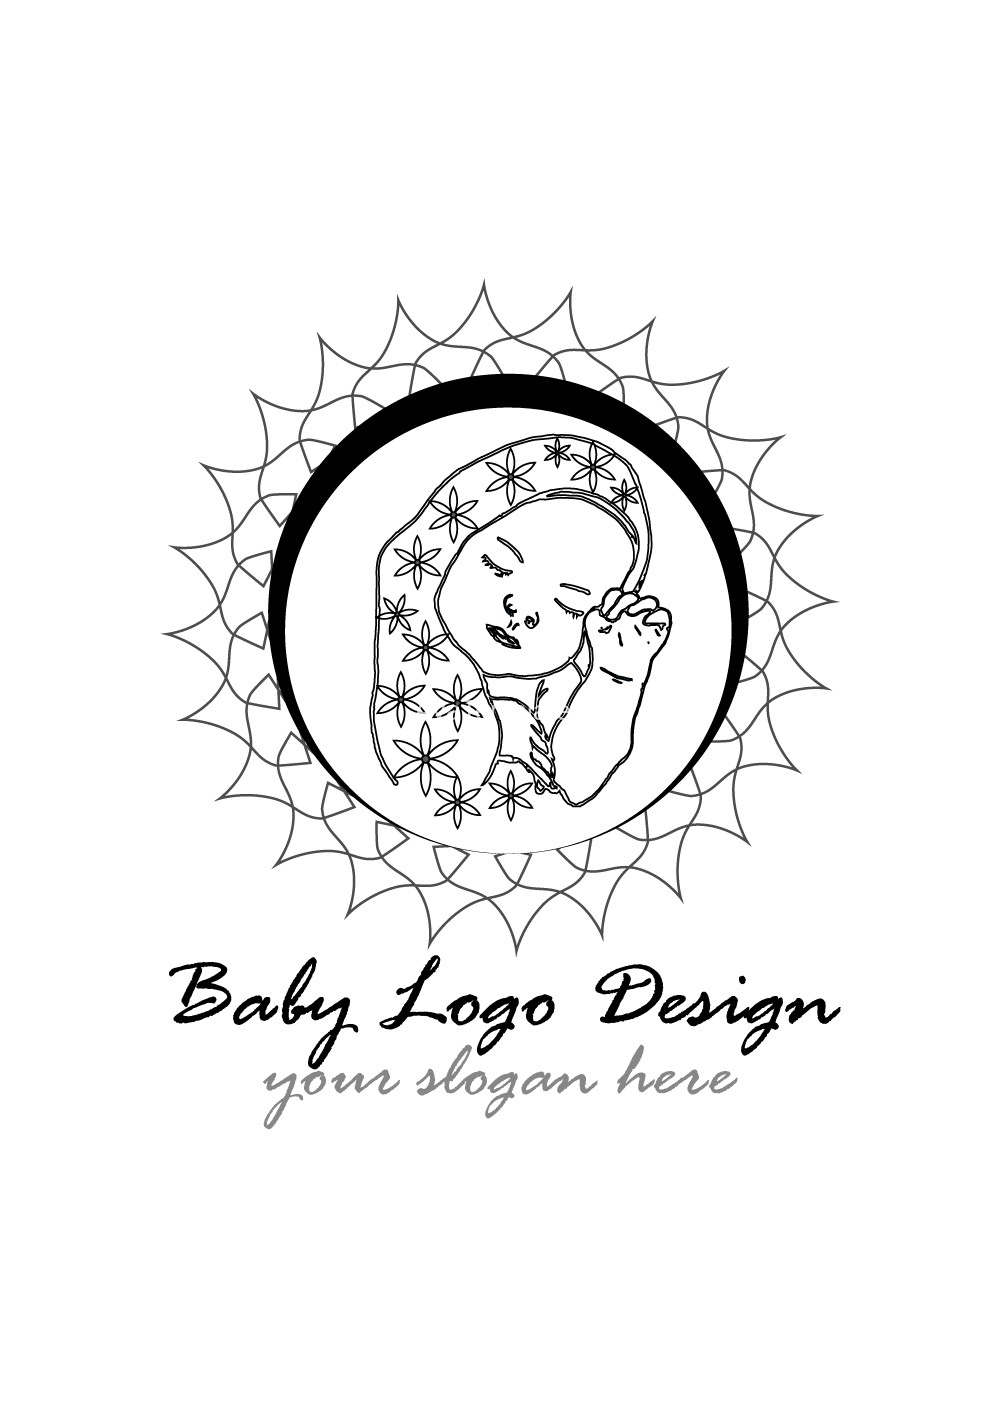 Baby-logo-design-Black-and-white-version